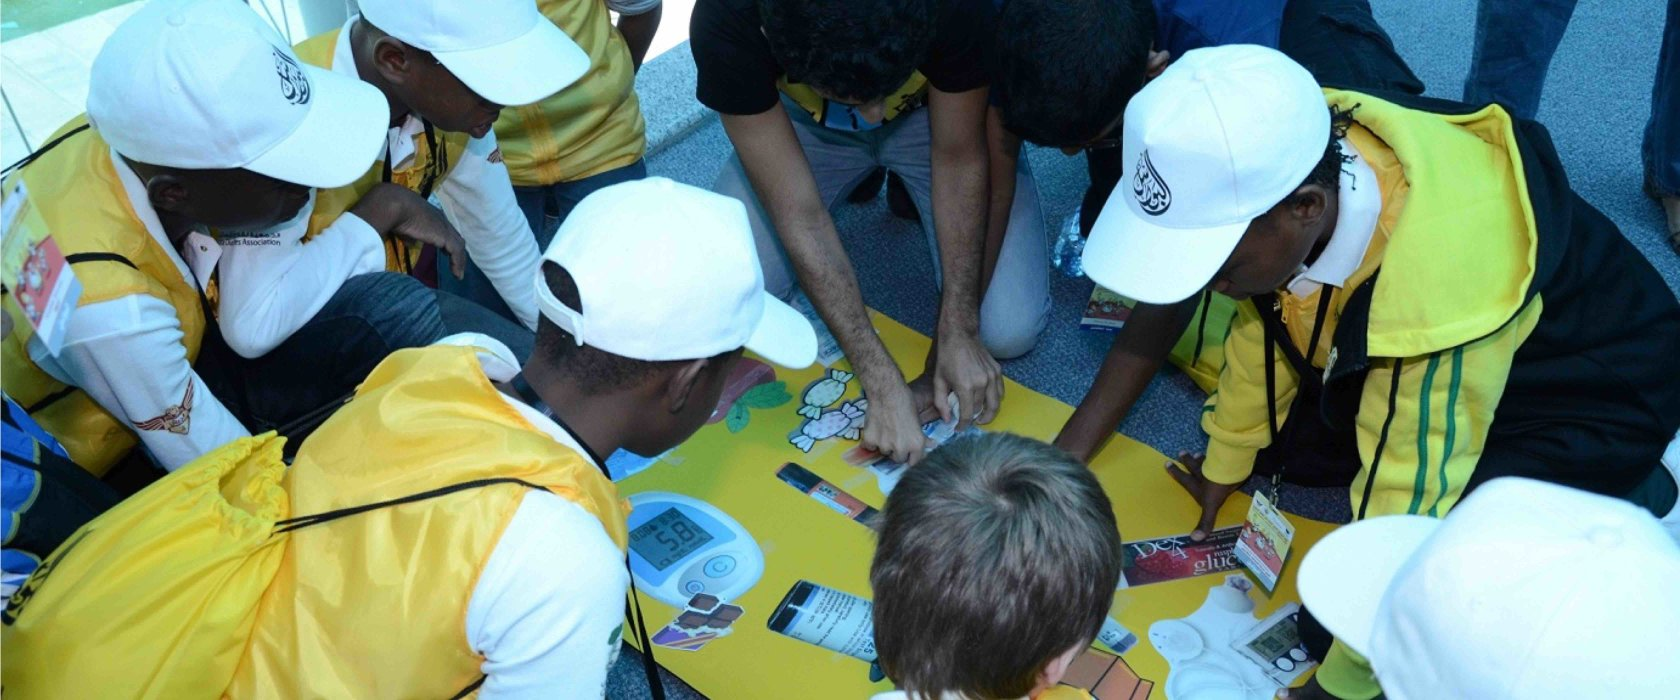 The 20th Edition of Al Bawasil Camp starts under 'We Can' slogan